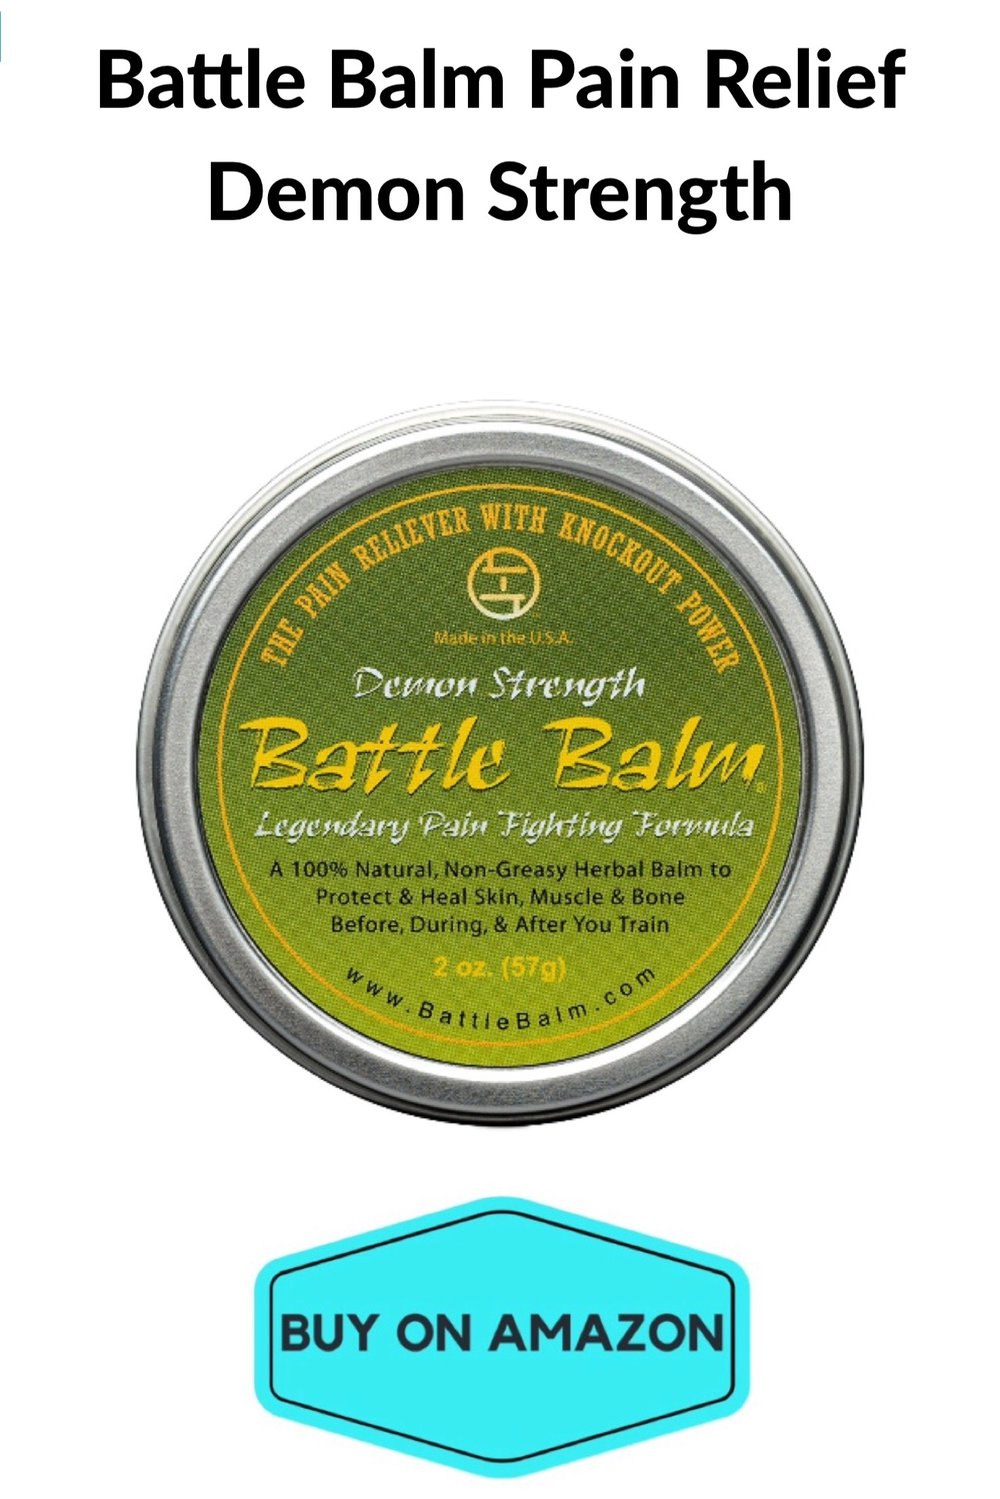 Battle Balm Pain Relief Demon Strength